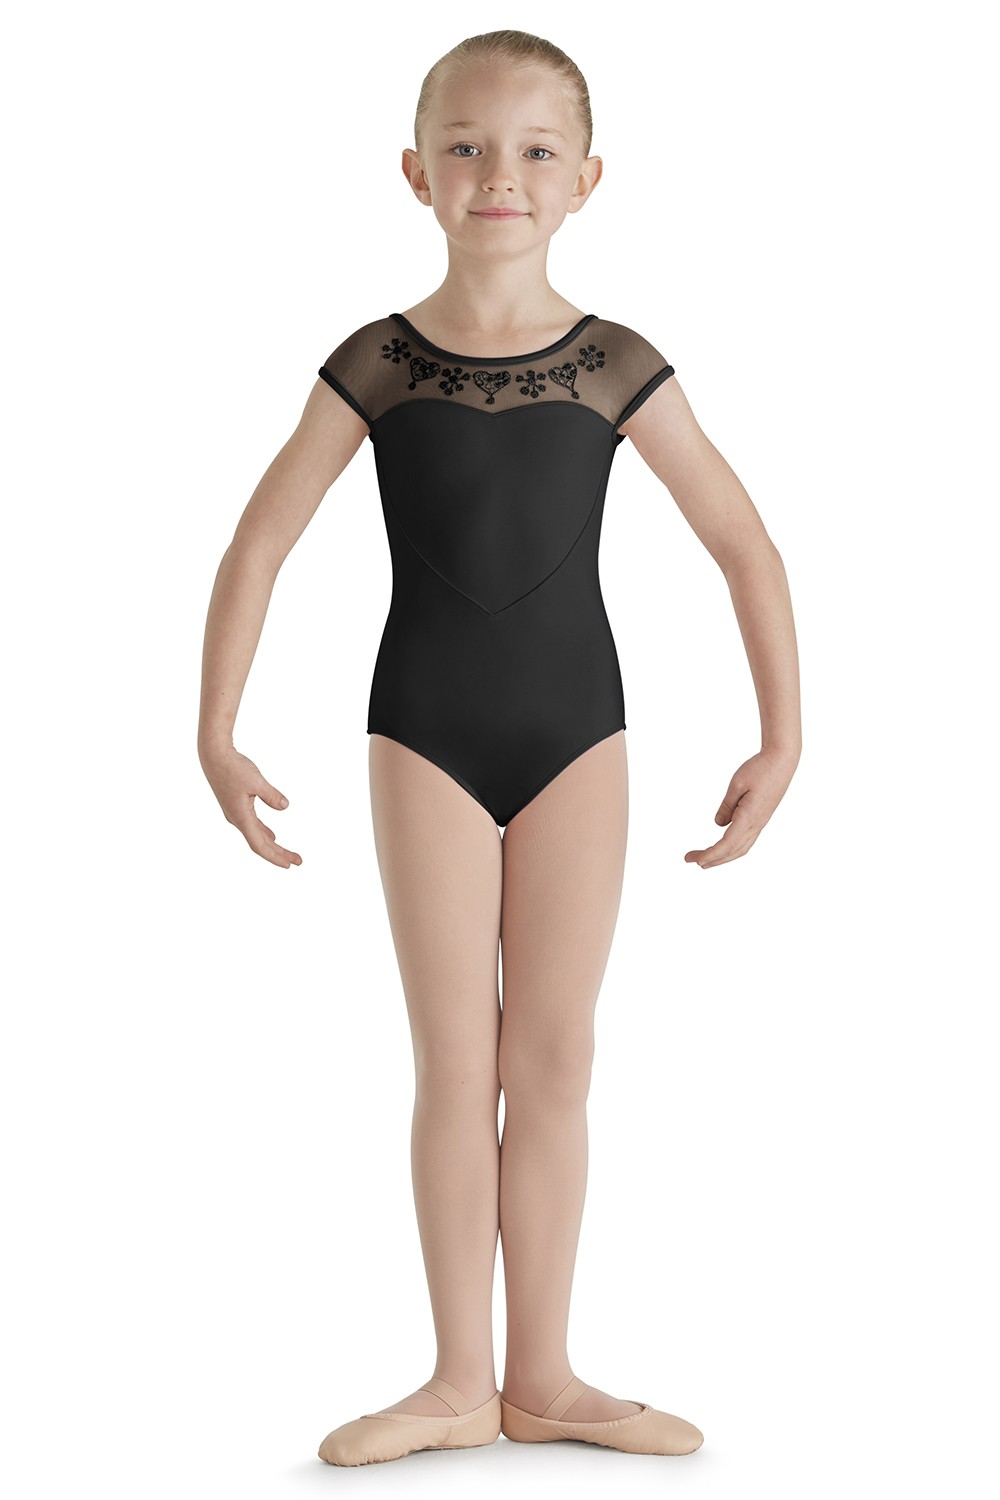 Dorelle Children's Dance Leotards